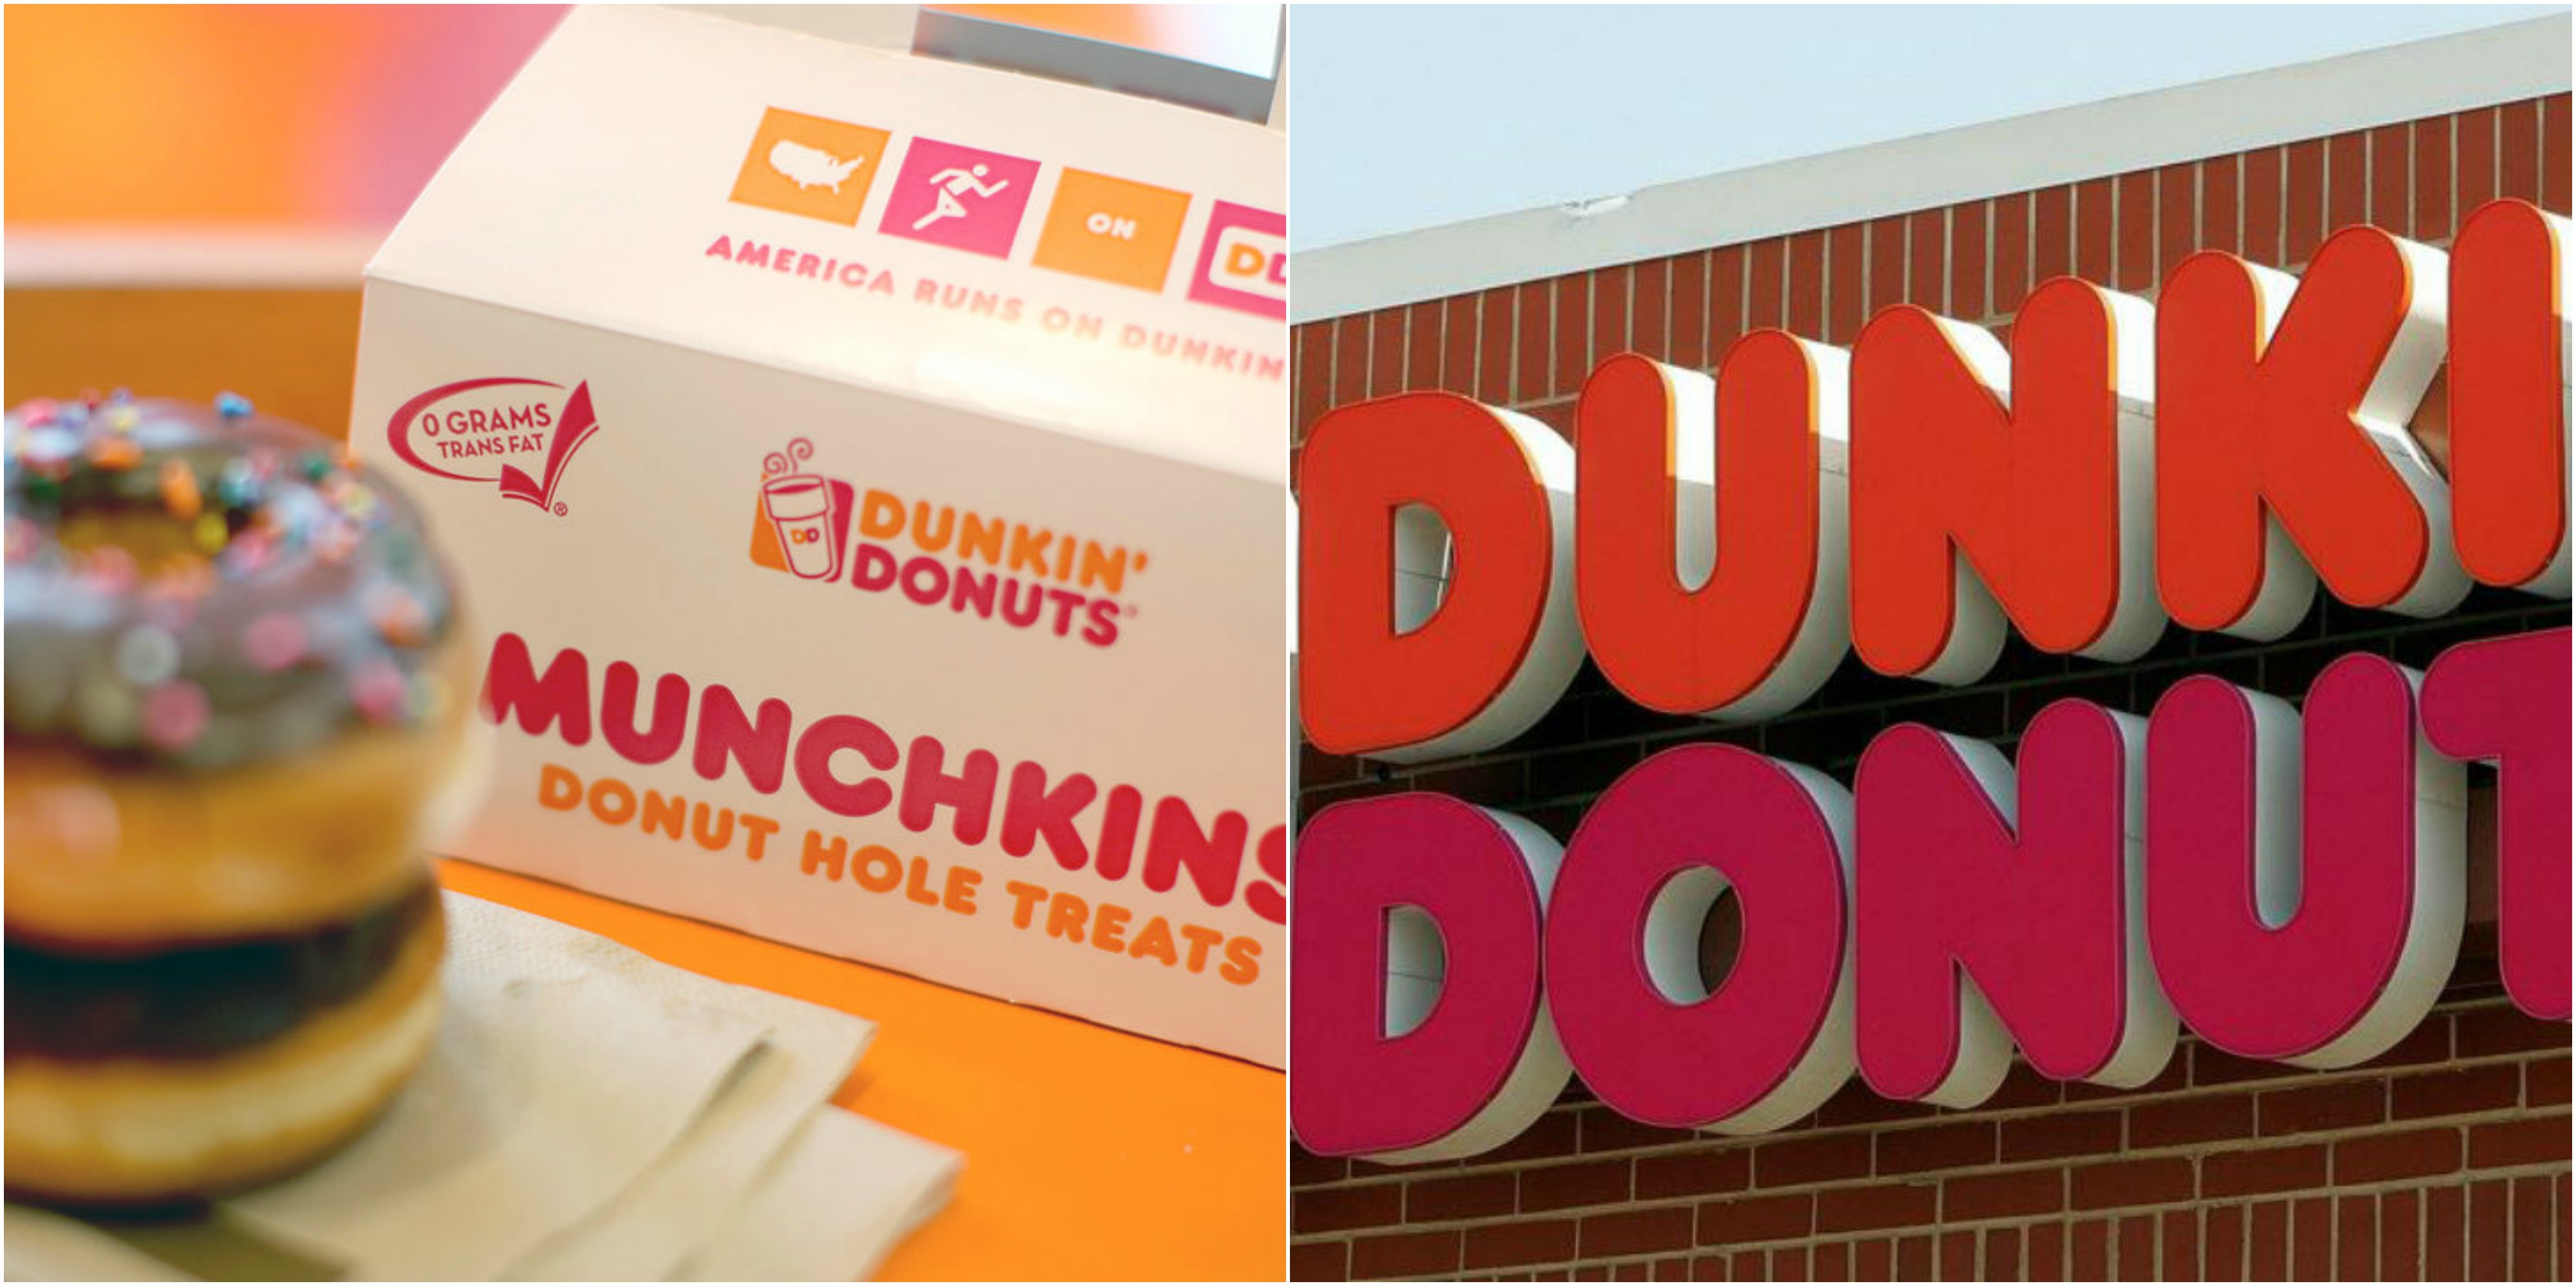 Dunkin is one of the most popular donut shops in the world